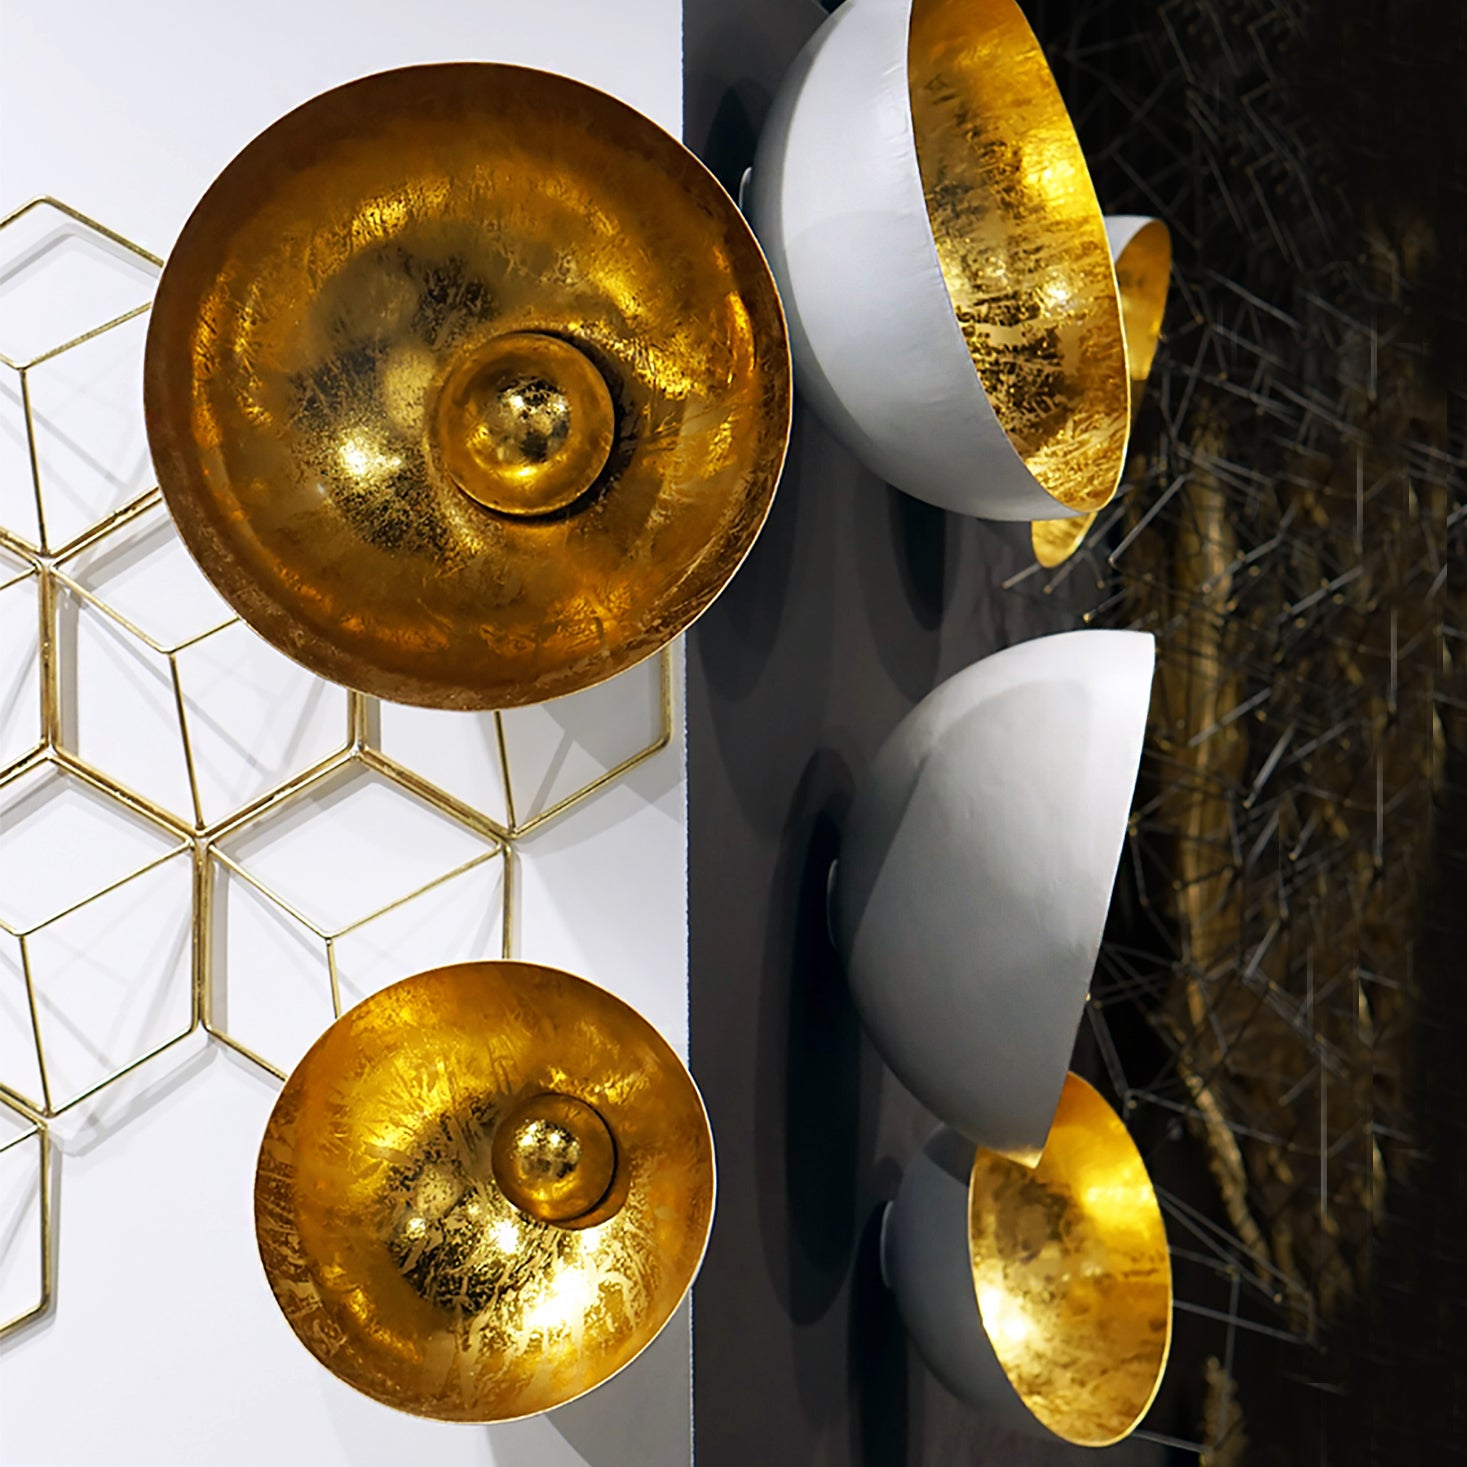 Natsu Gold Wall Art by Gold Leaf Design Group in Atlanta Showroom front and side view.